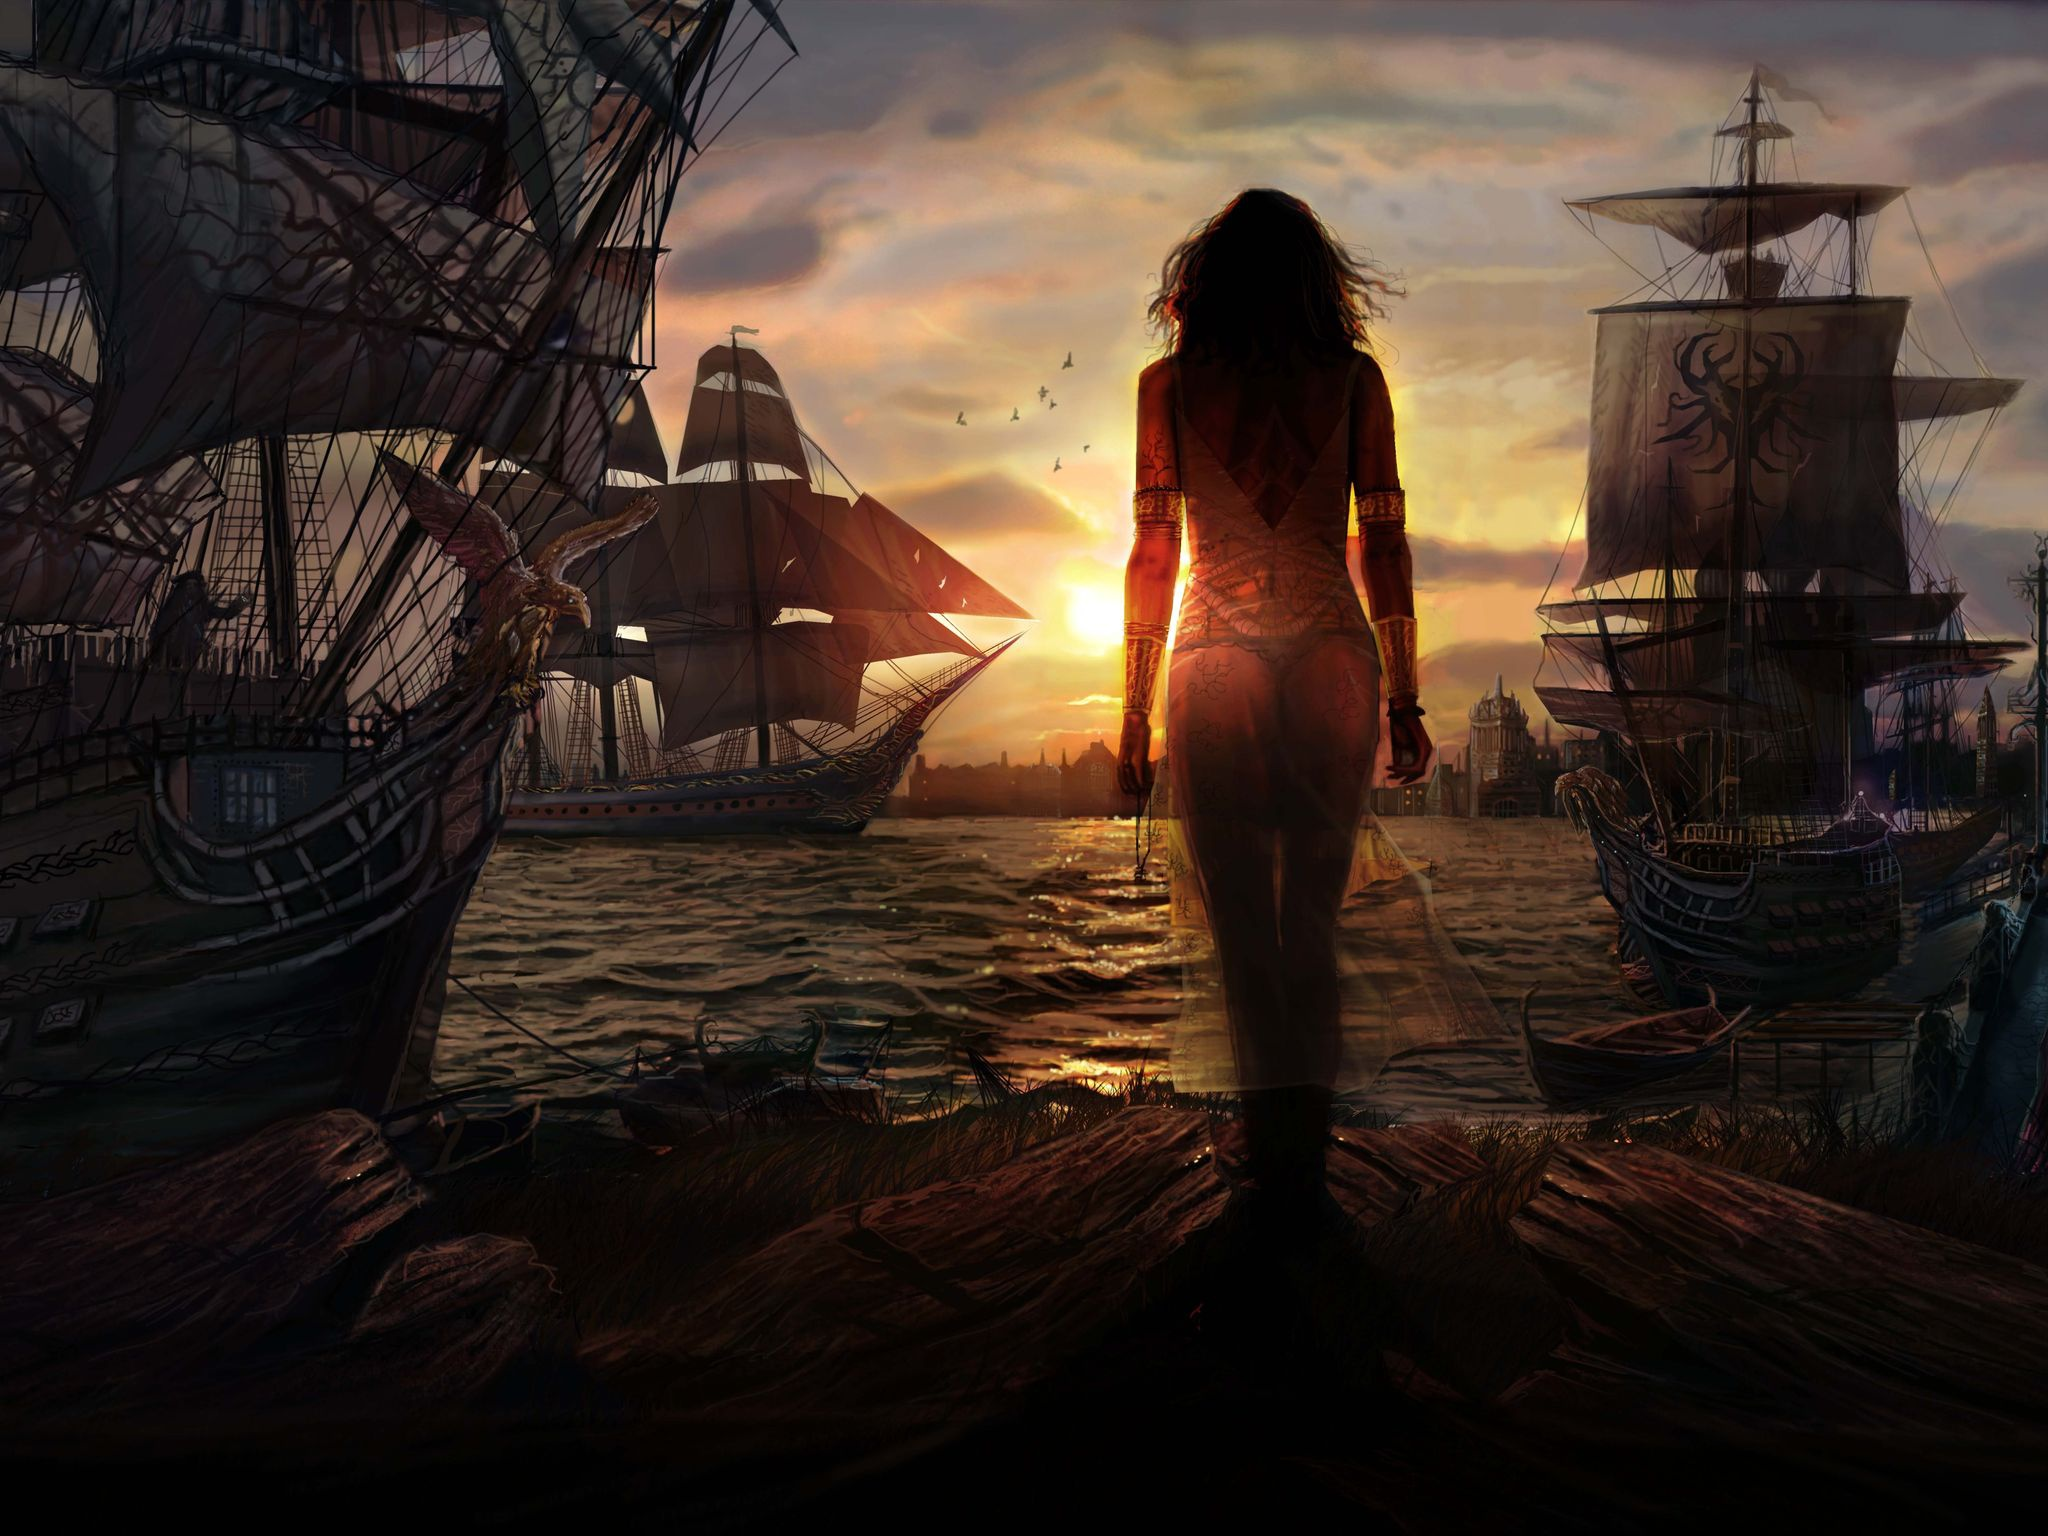 Pirate Wallpaper 42